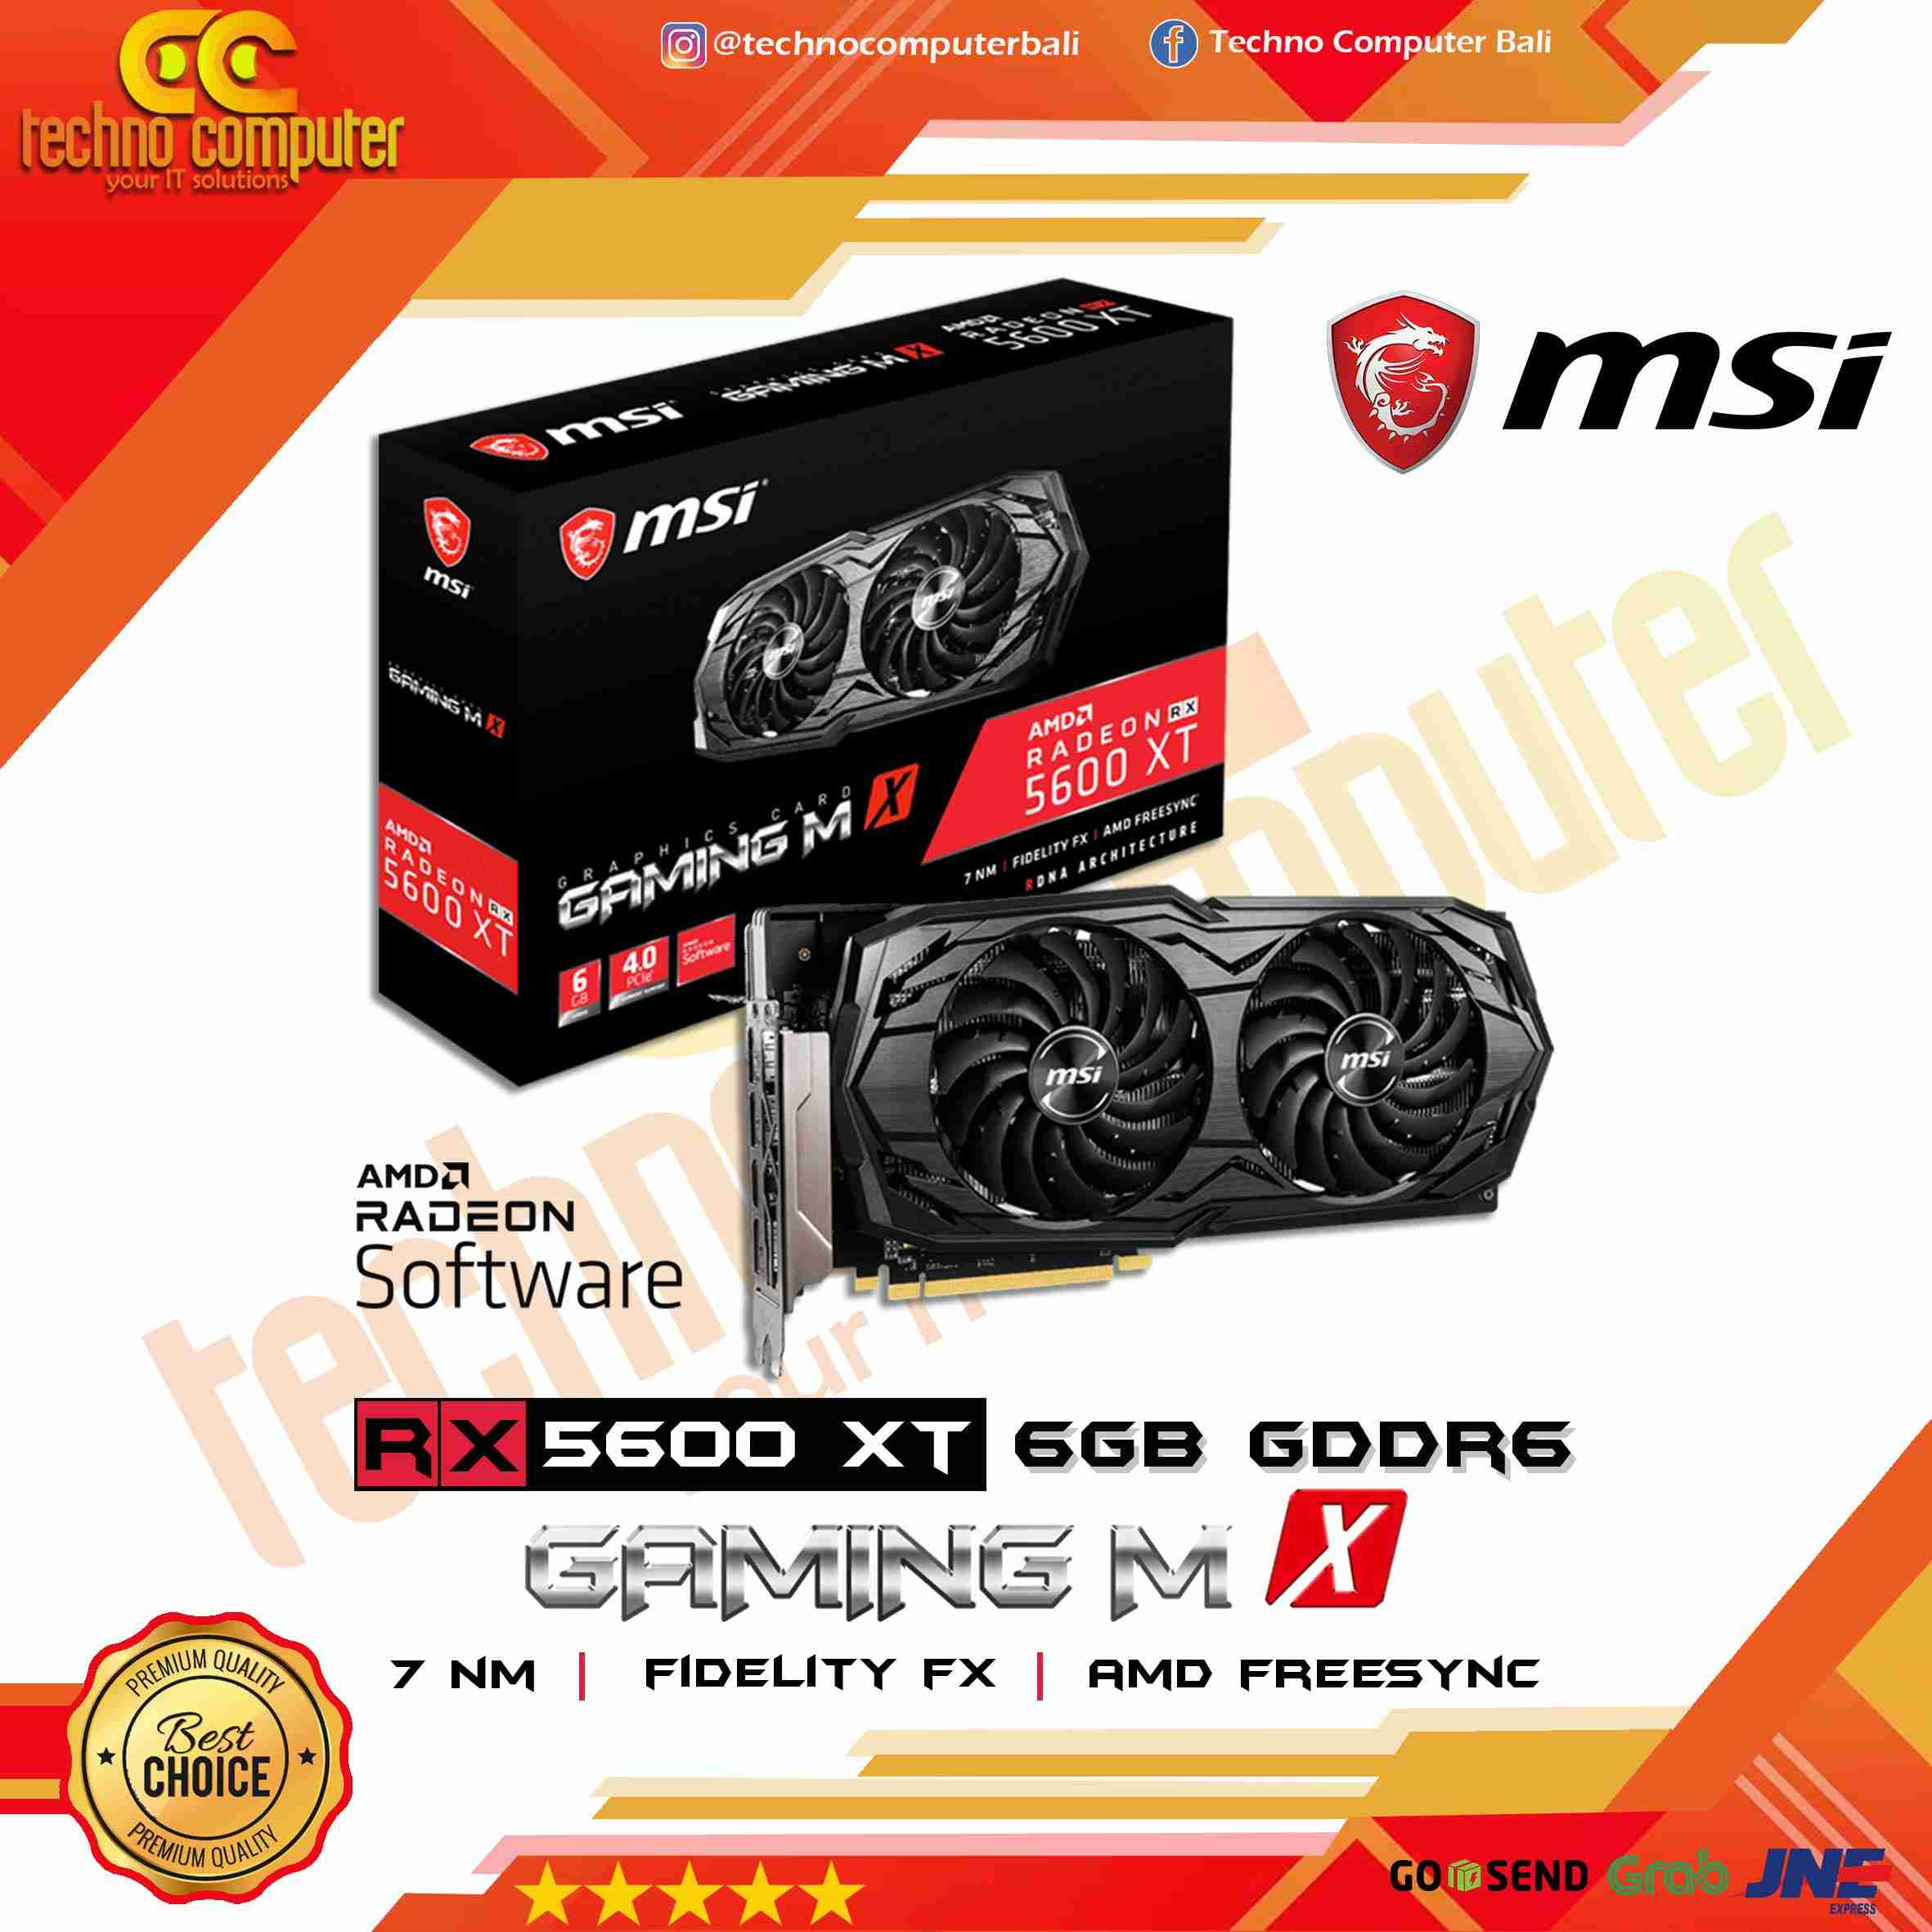 MSI Radeon RX 5600 XT 6GB GDDR6 - Gaming MX